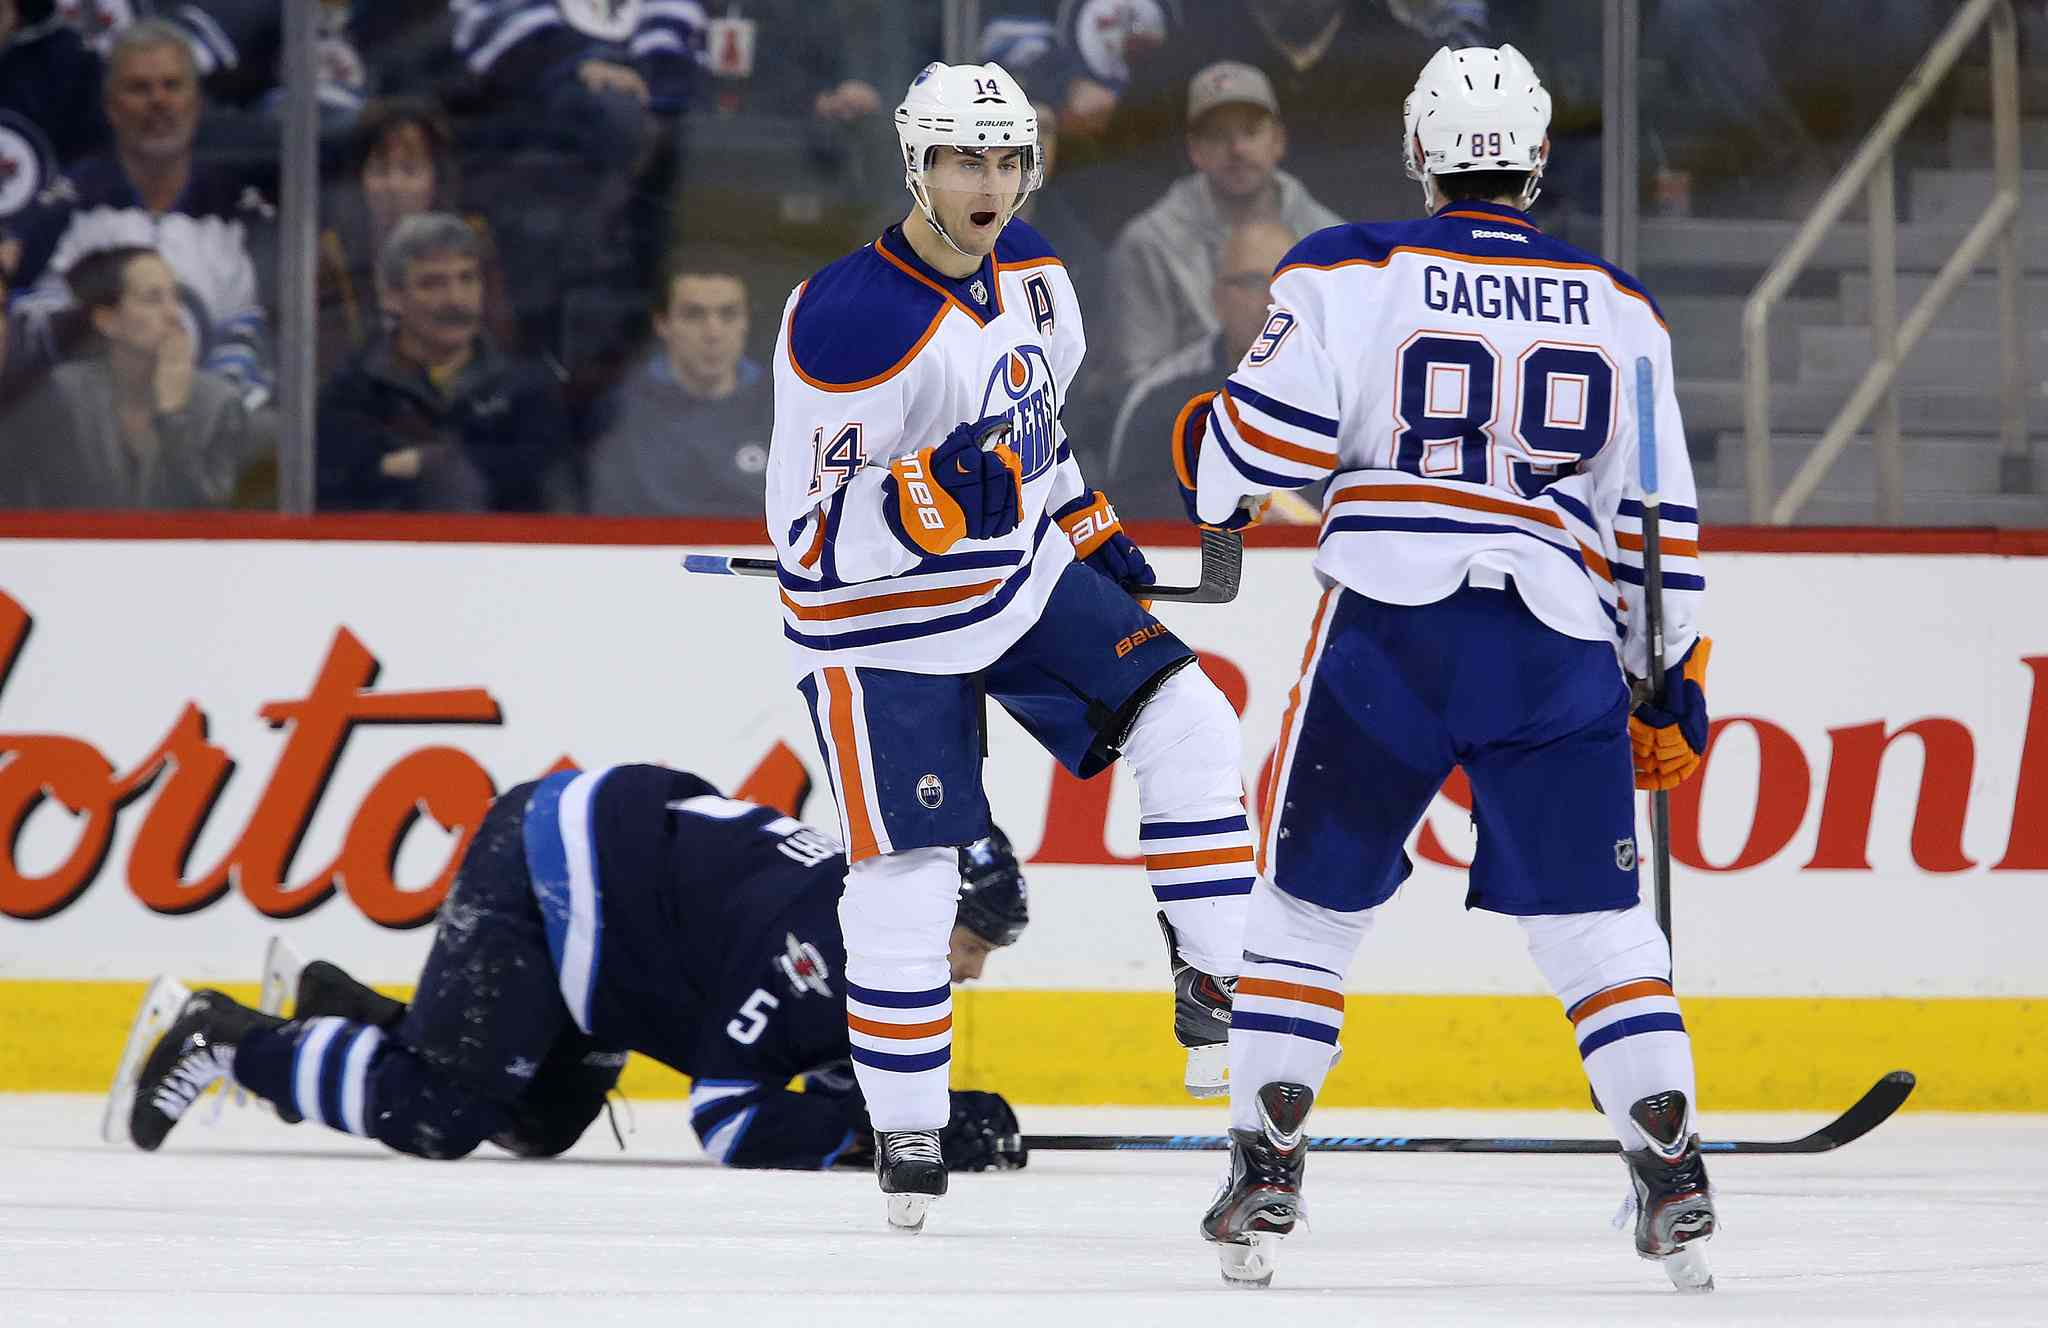 Edmonton Oilers' Jordan Eberle (14) celebrates with Sam Gagner (89) after scoring against the Winnipeg Jets during NHL hockey action at MTS Centre in Winnipeg Saturday.